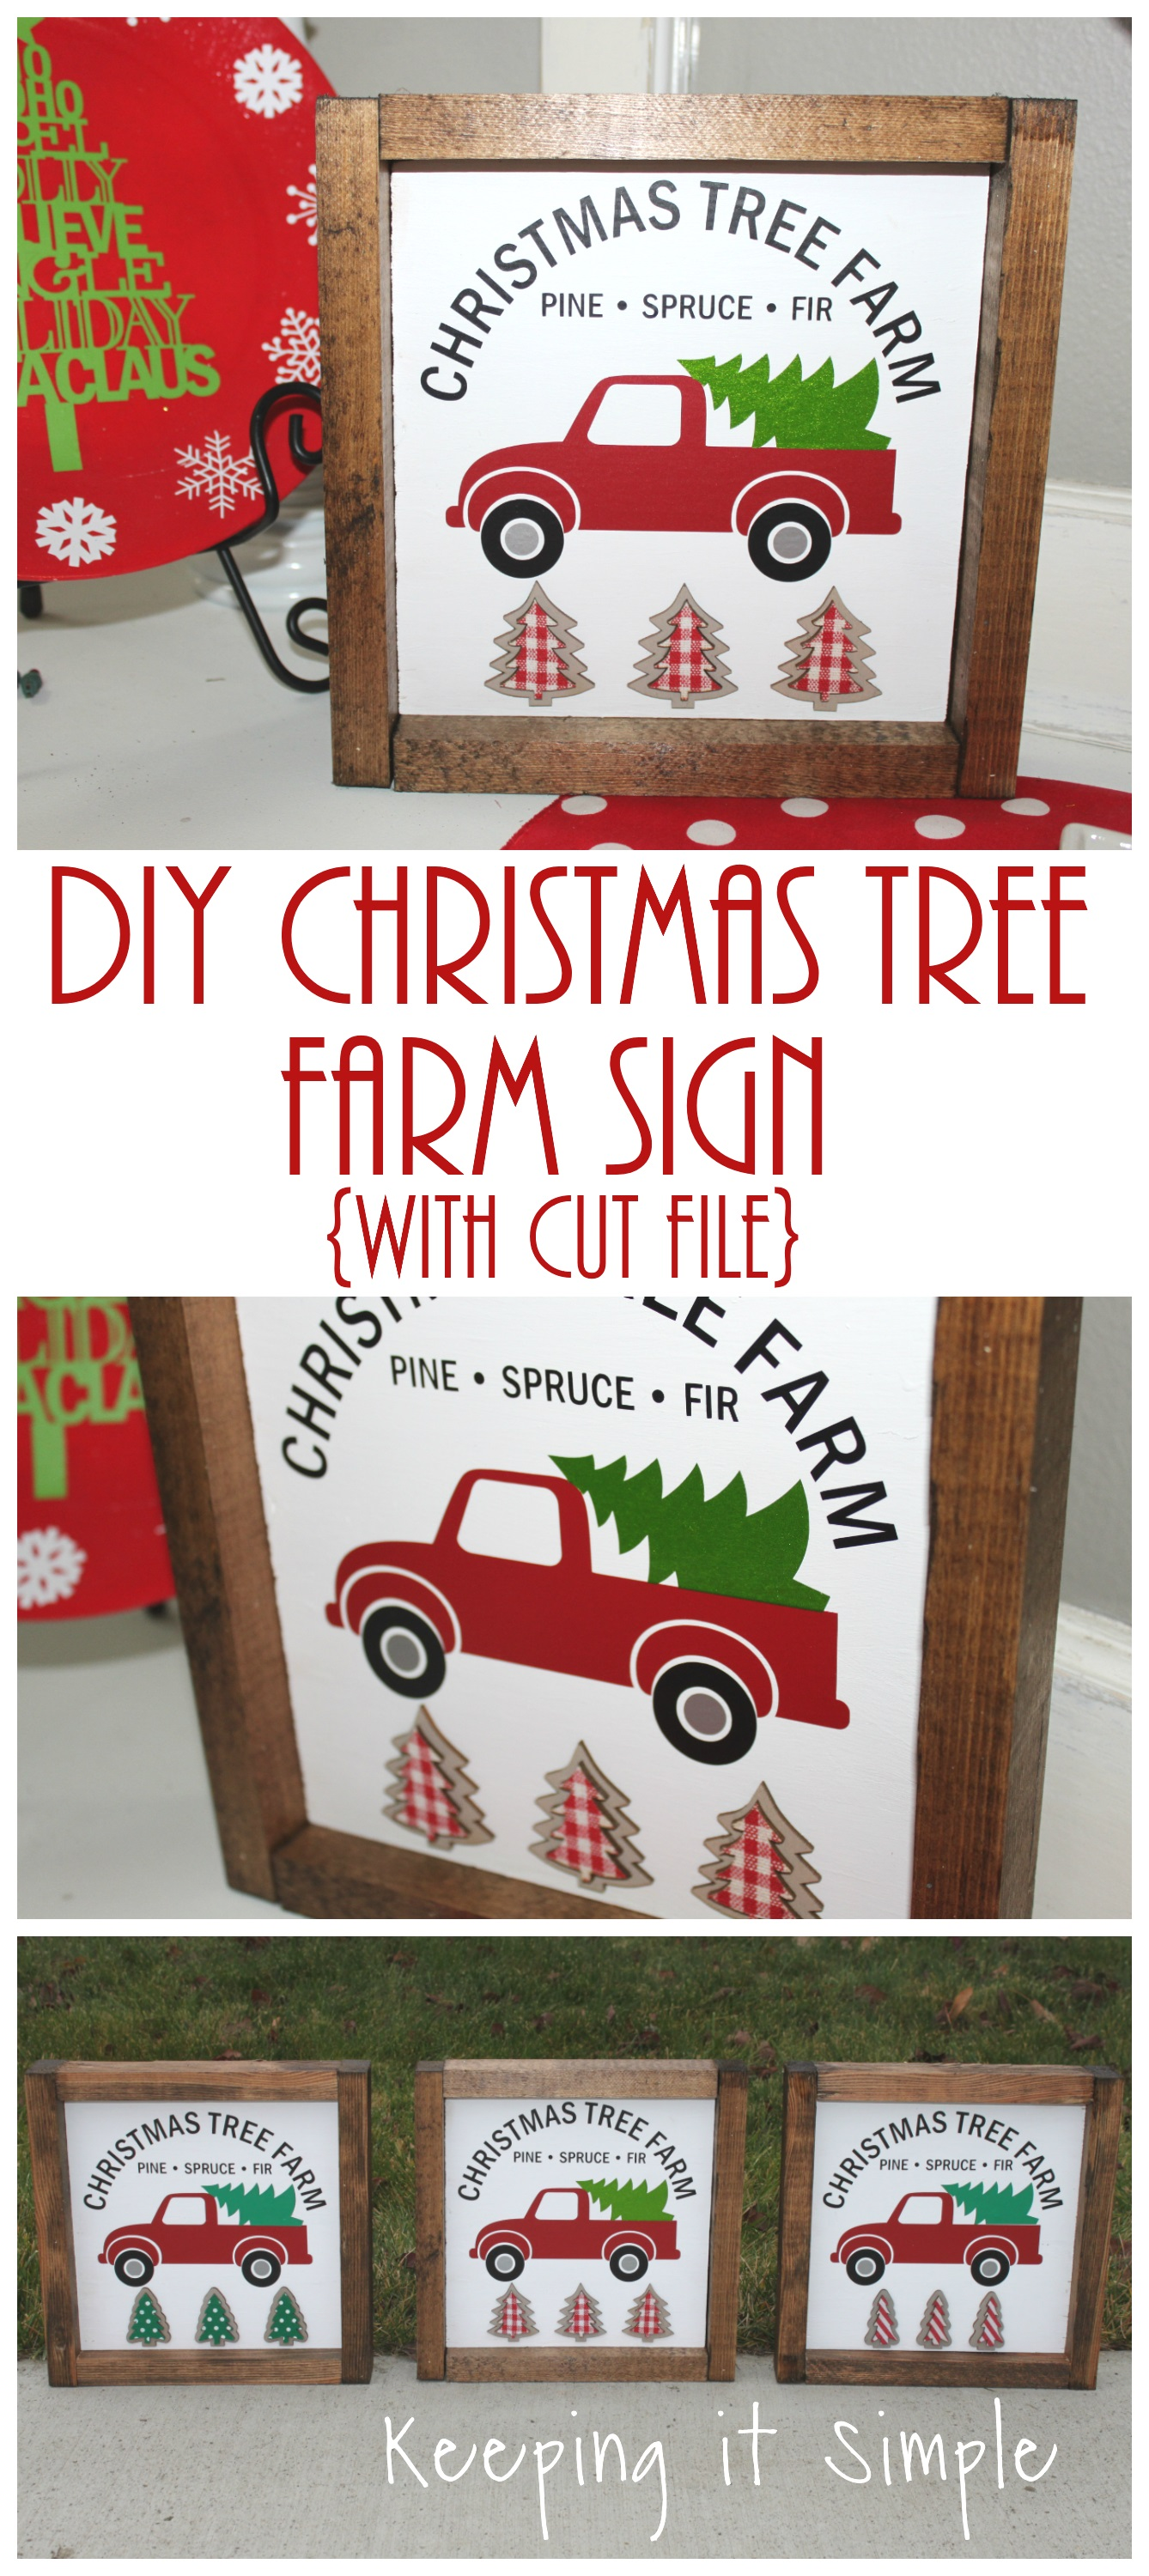 Christmas Tree Farm Sign With Cut File Keeping It Simple